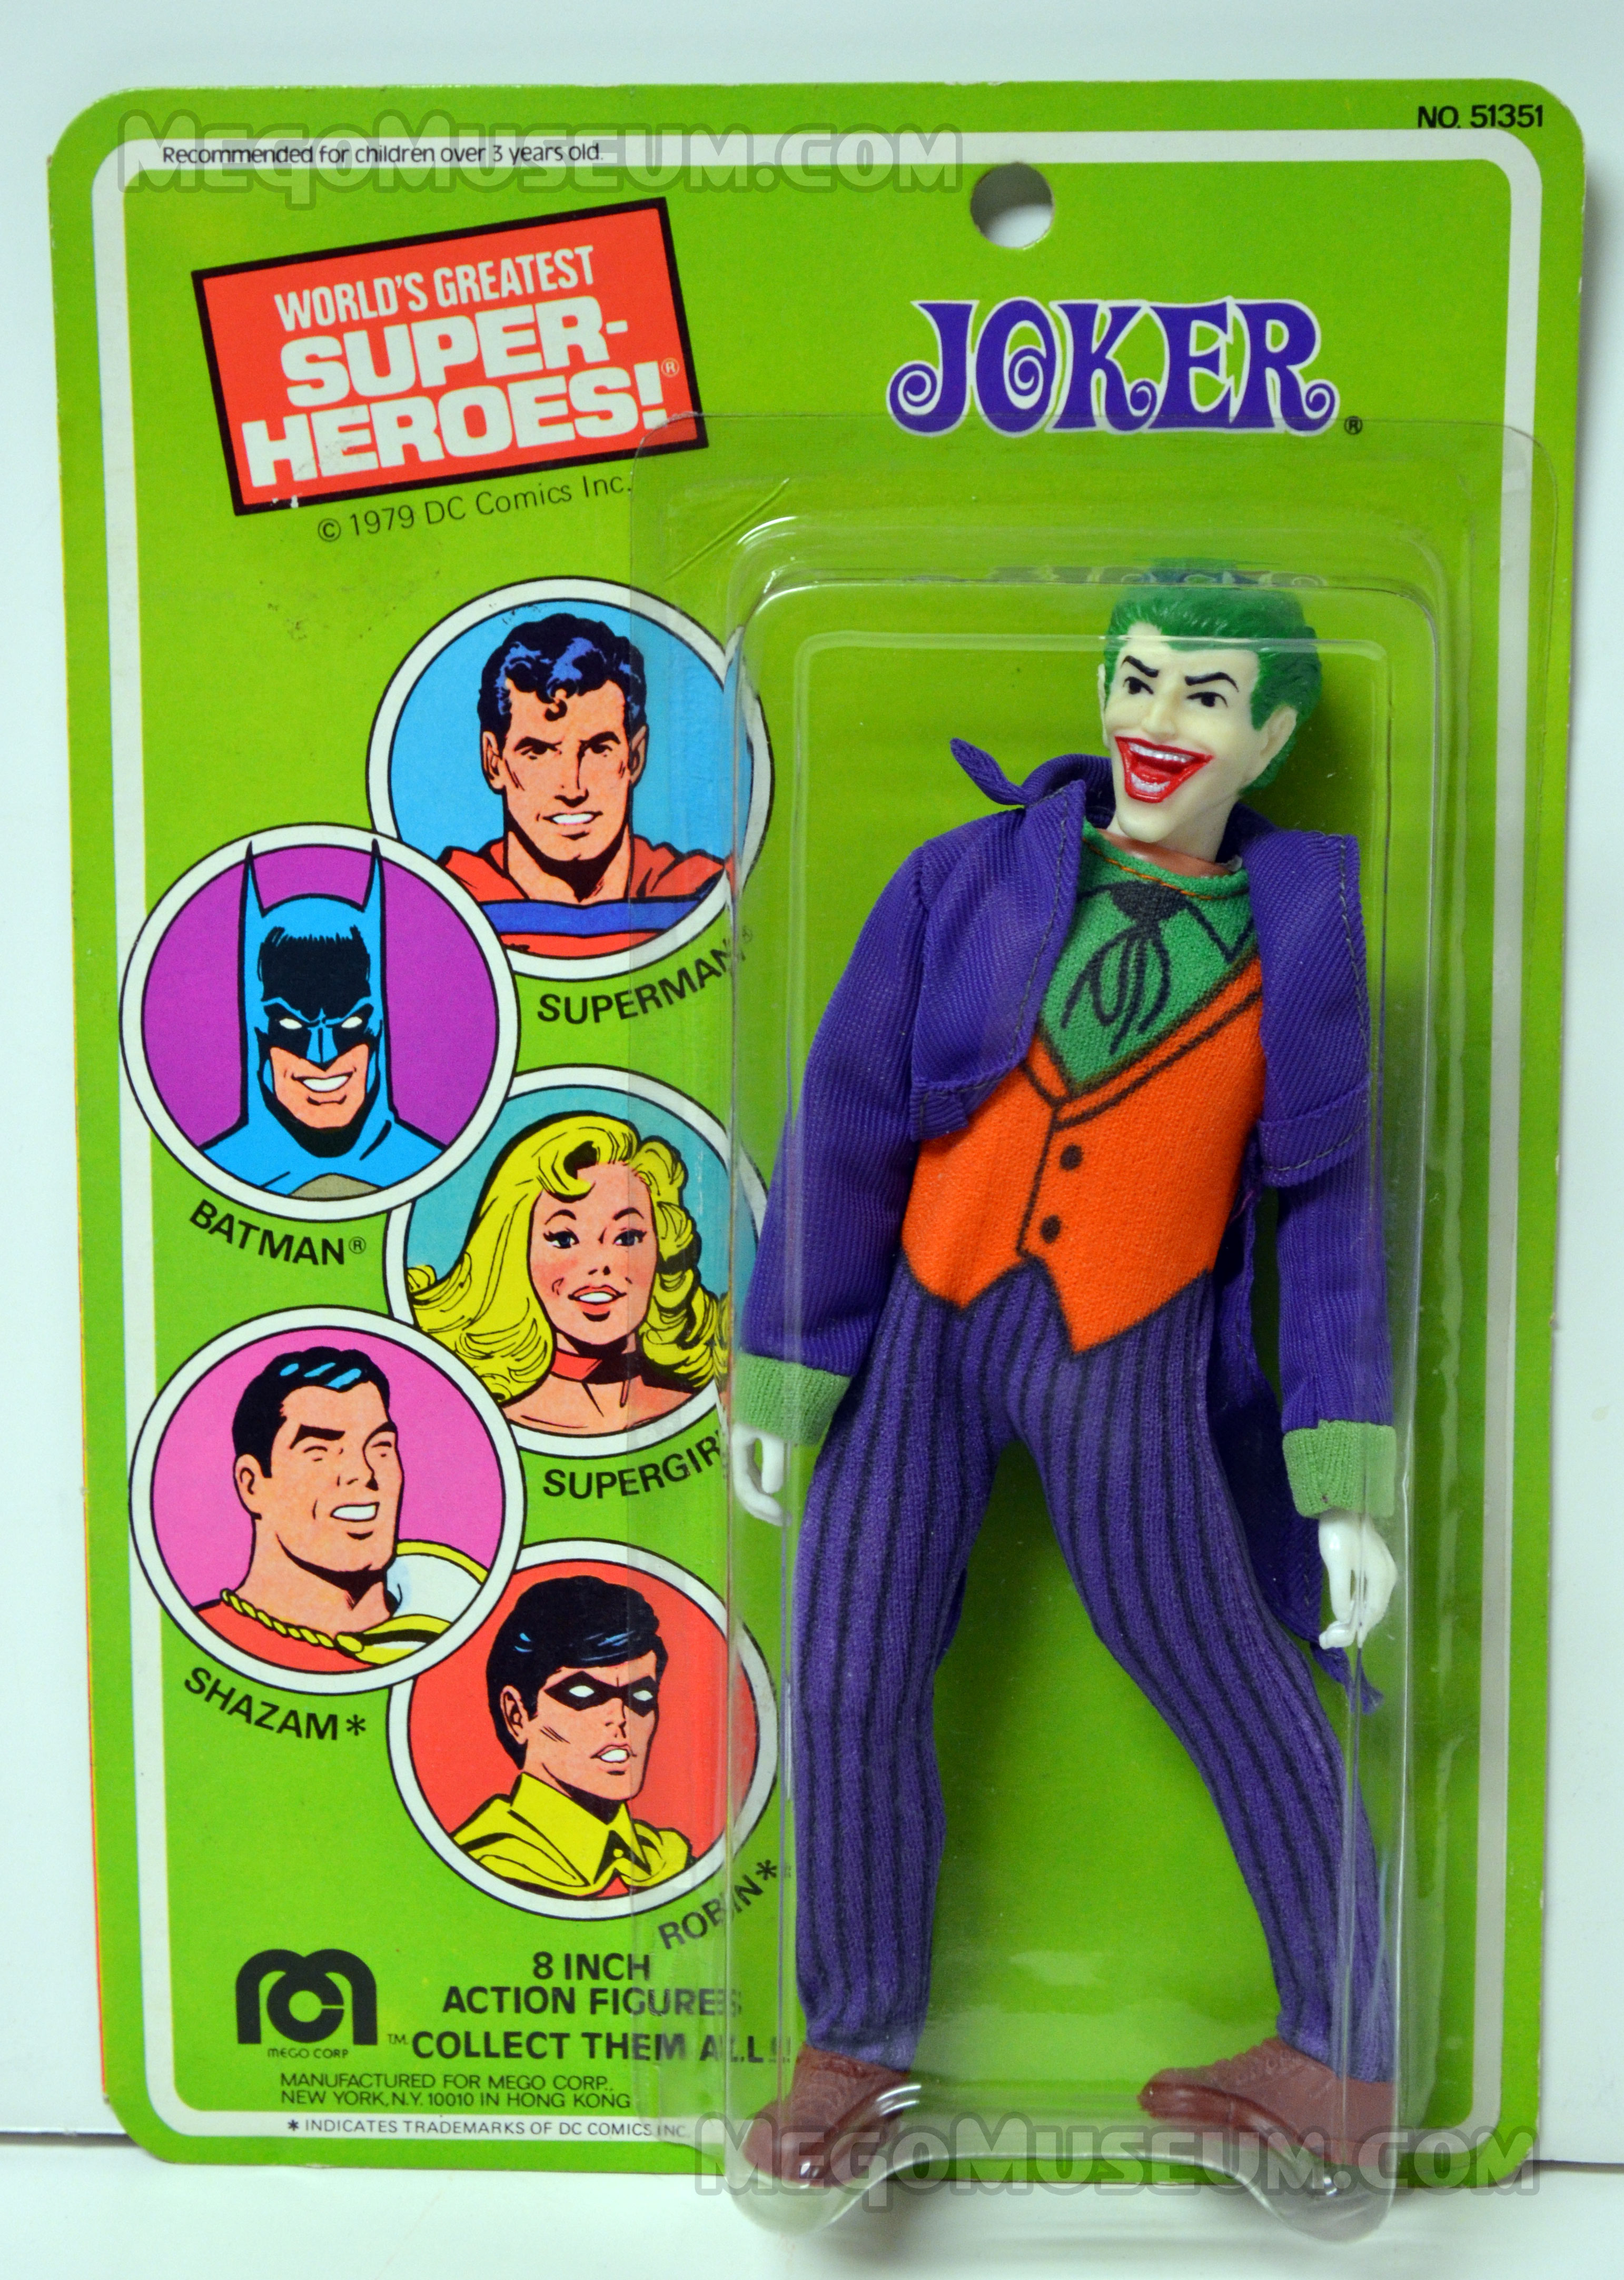 Card for 1979 copyrighted US carded Mego Joker action figure